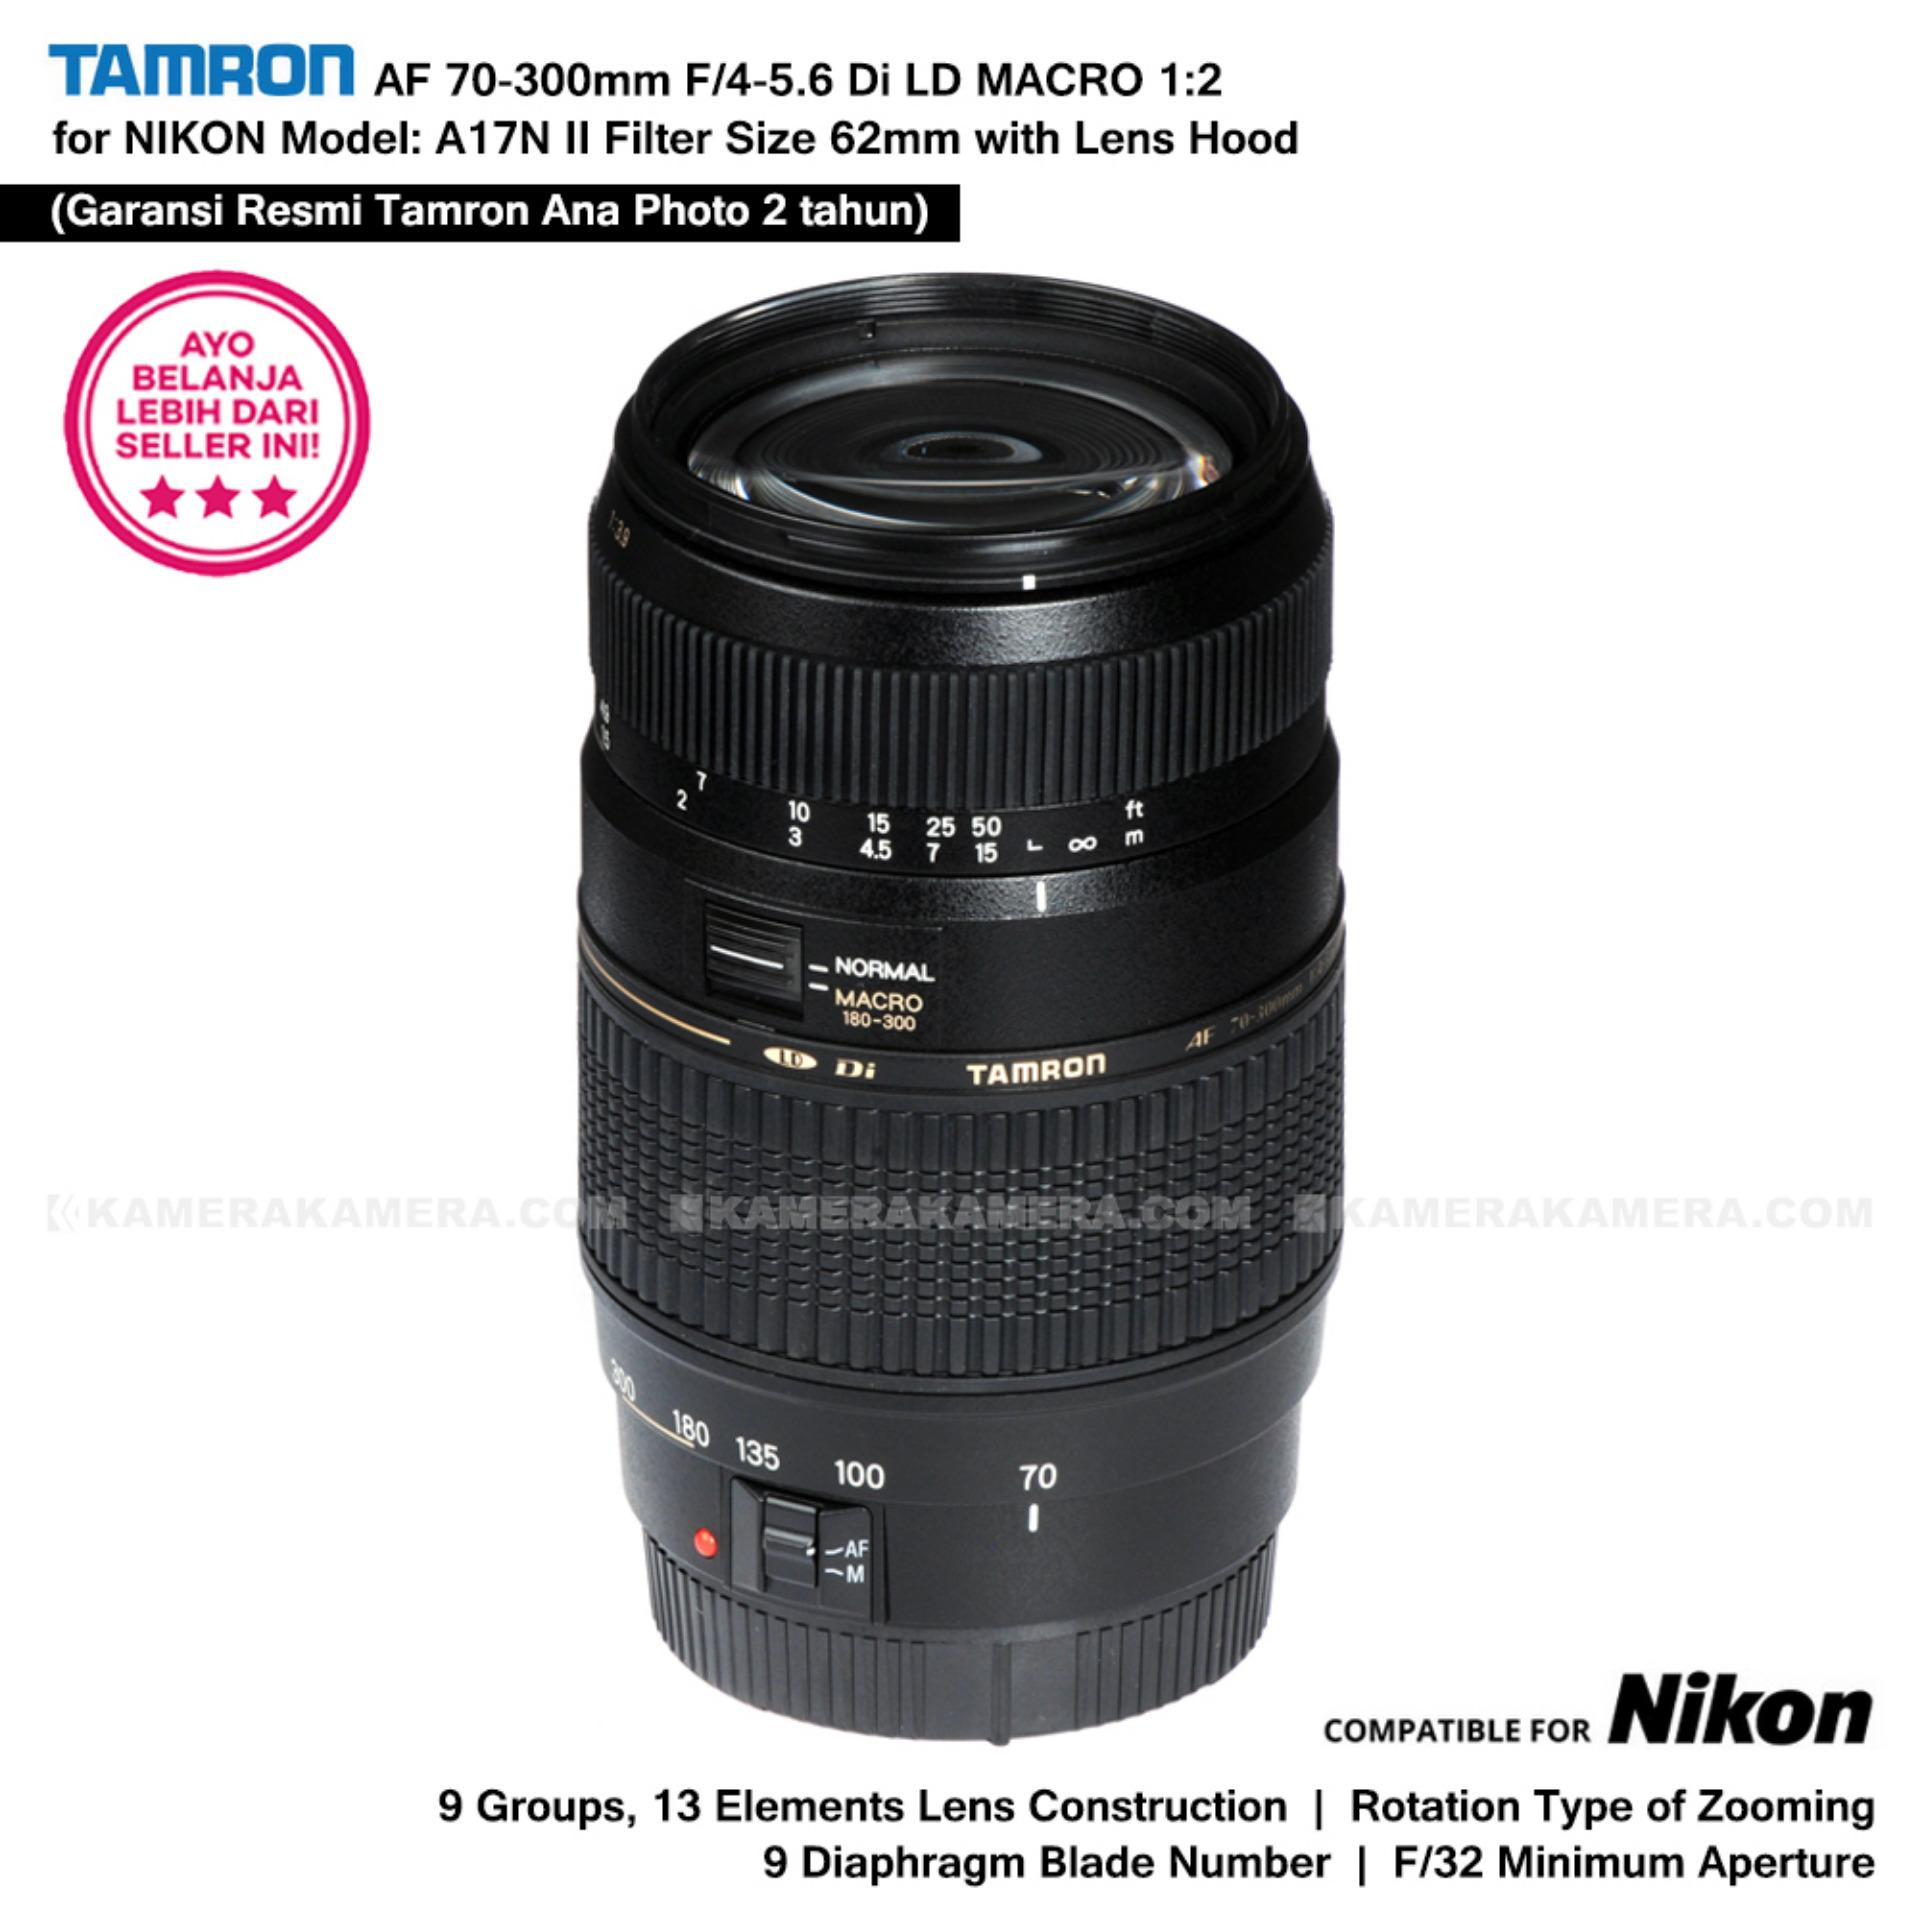 Referensi Harga Lensa Nikon Af 70 300mm F 4 56g Oktober 2018 S 58mm 14g Garansi Resmi Tamron 56 Di Ld Macro 12 Model A17n Ii Built In Motor For D With Lens Hood Ana Photo 2 Tahun